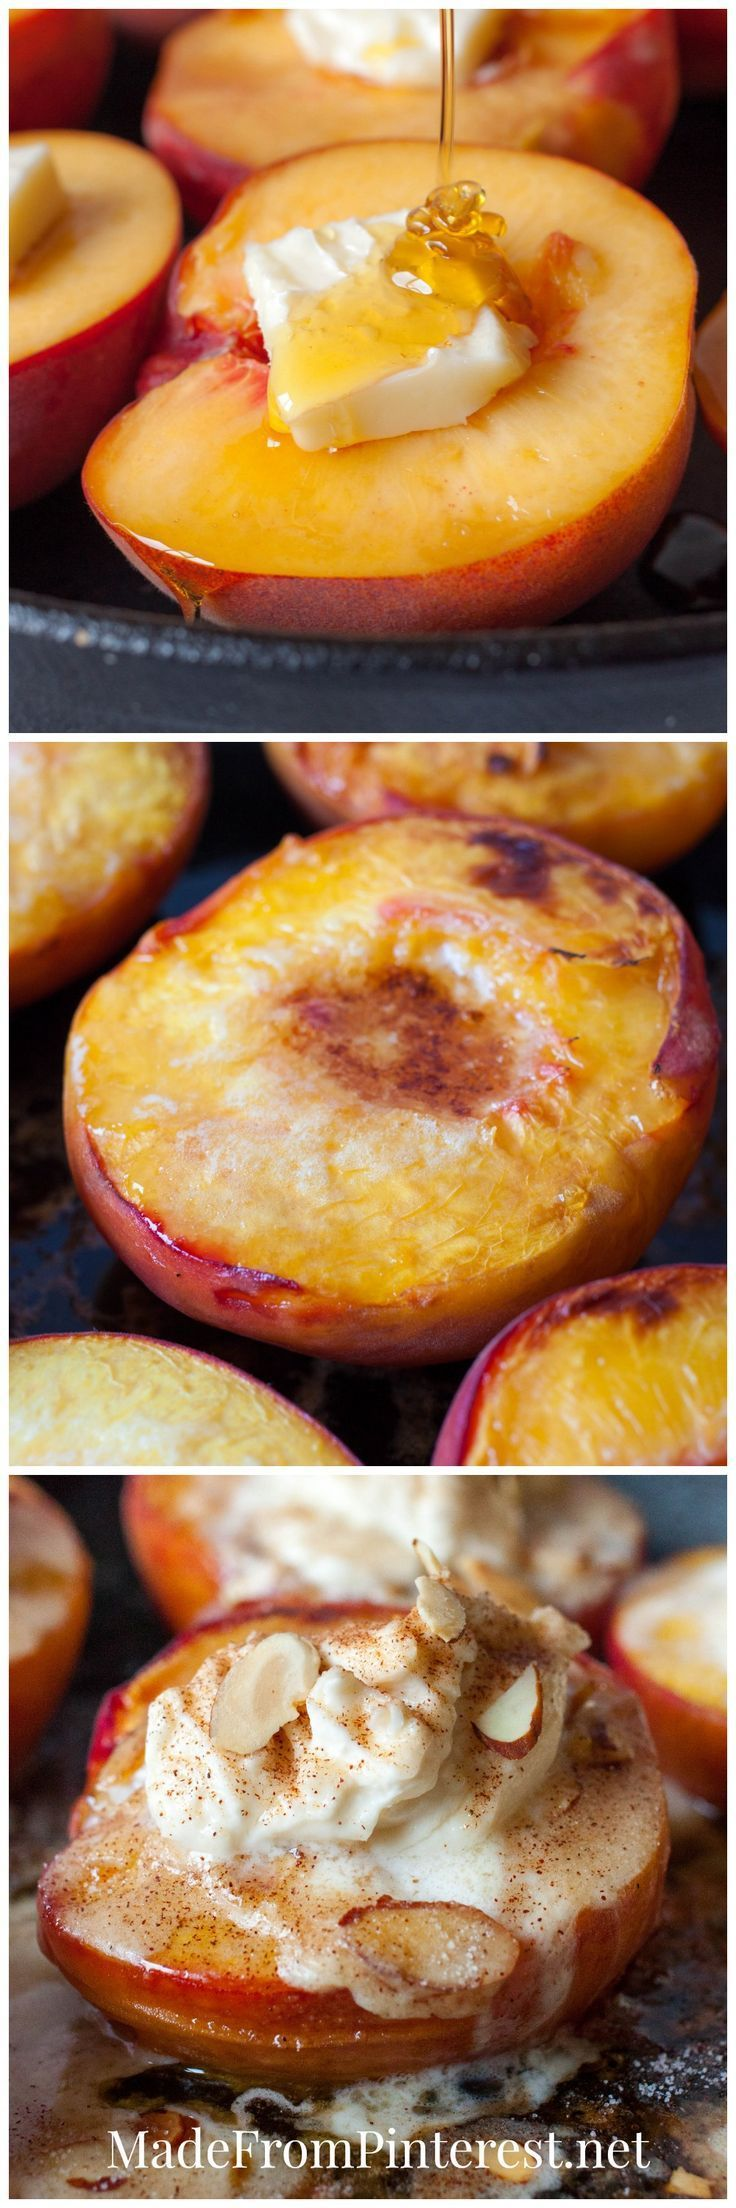 Baked Peaches and Cream simple decadent dessert that is so easy to make!